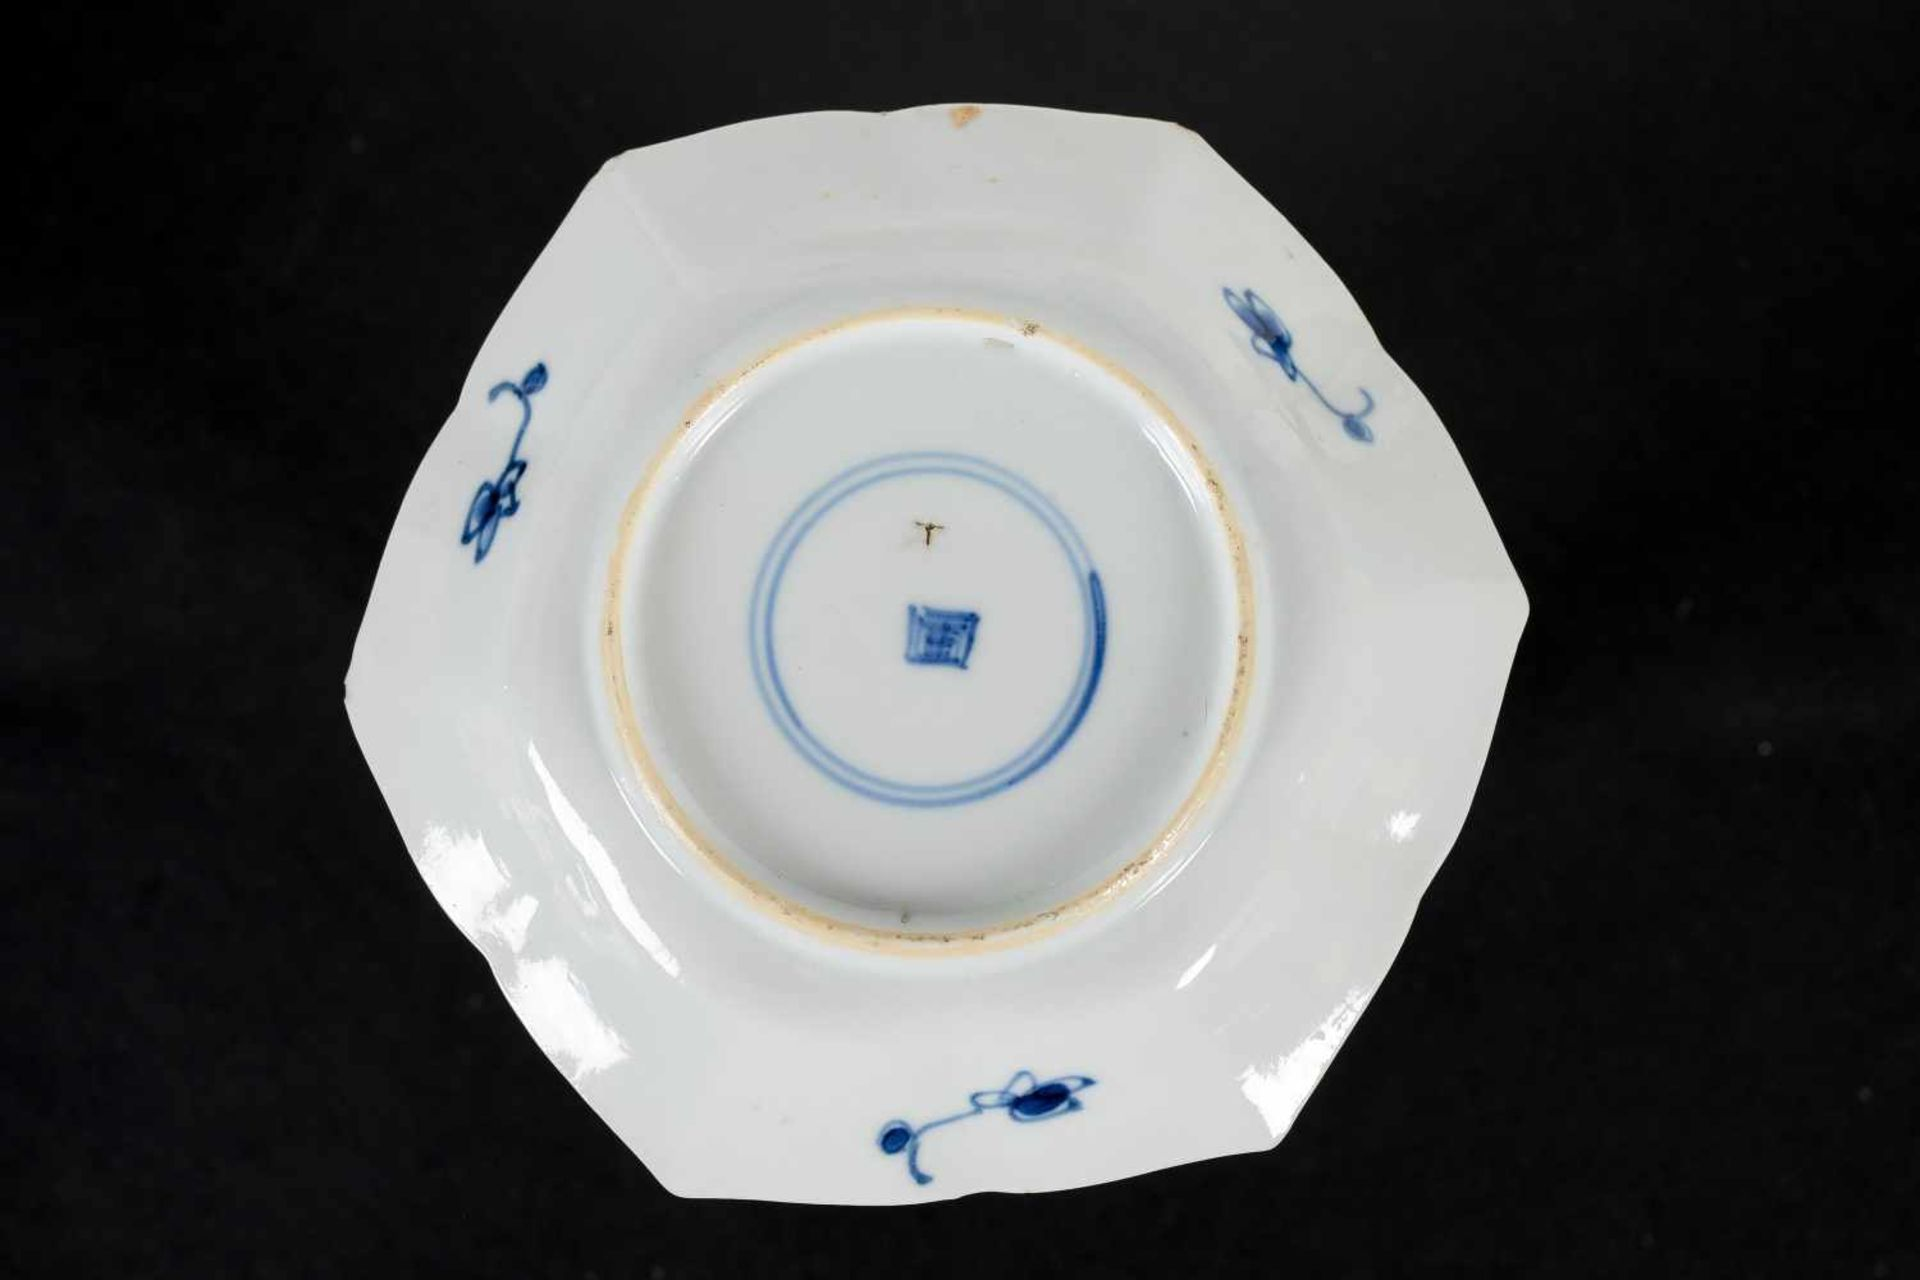 A set of three hexagonal blue and white porcelain cups with saucers, decorated with ducks, flowers - Bild 4 aus 12